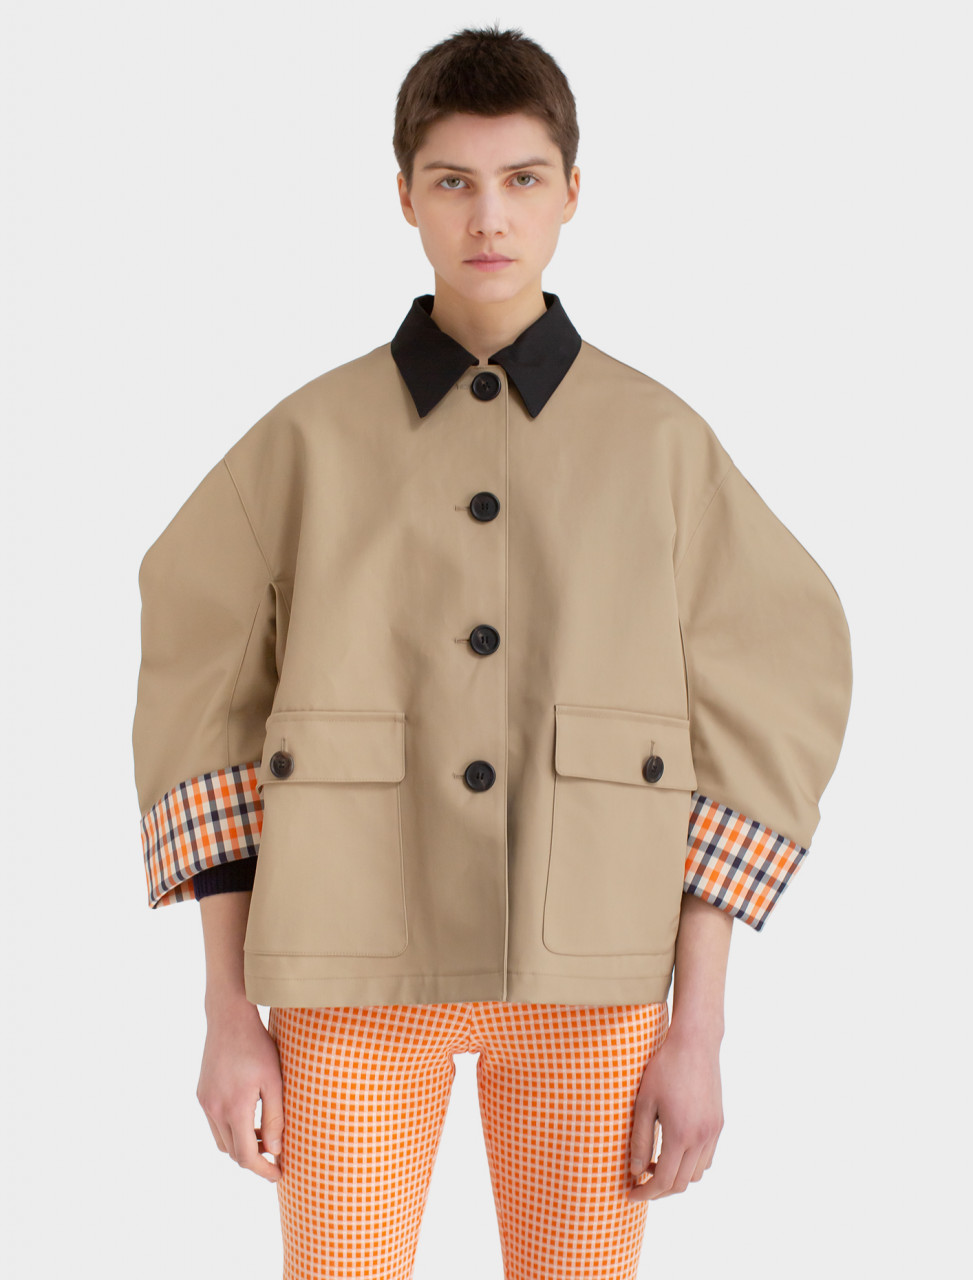 Poplin Gingham Jacket in Mustard